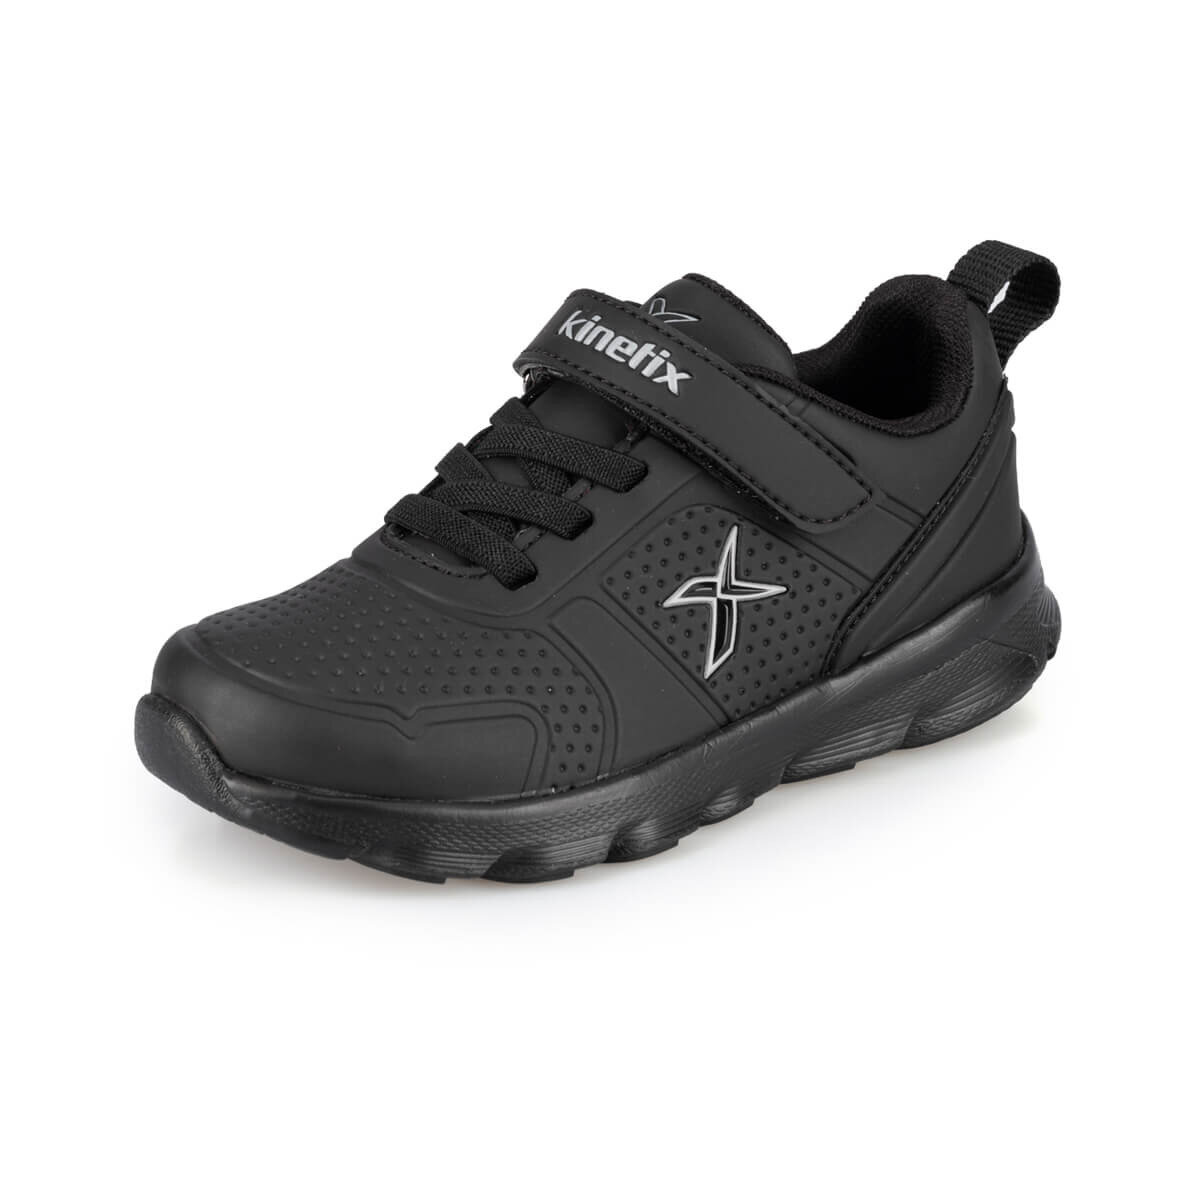 FLO ALMERA II J 9PR Black Male Child Running Shoes KINETIX